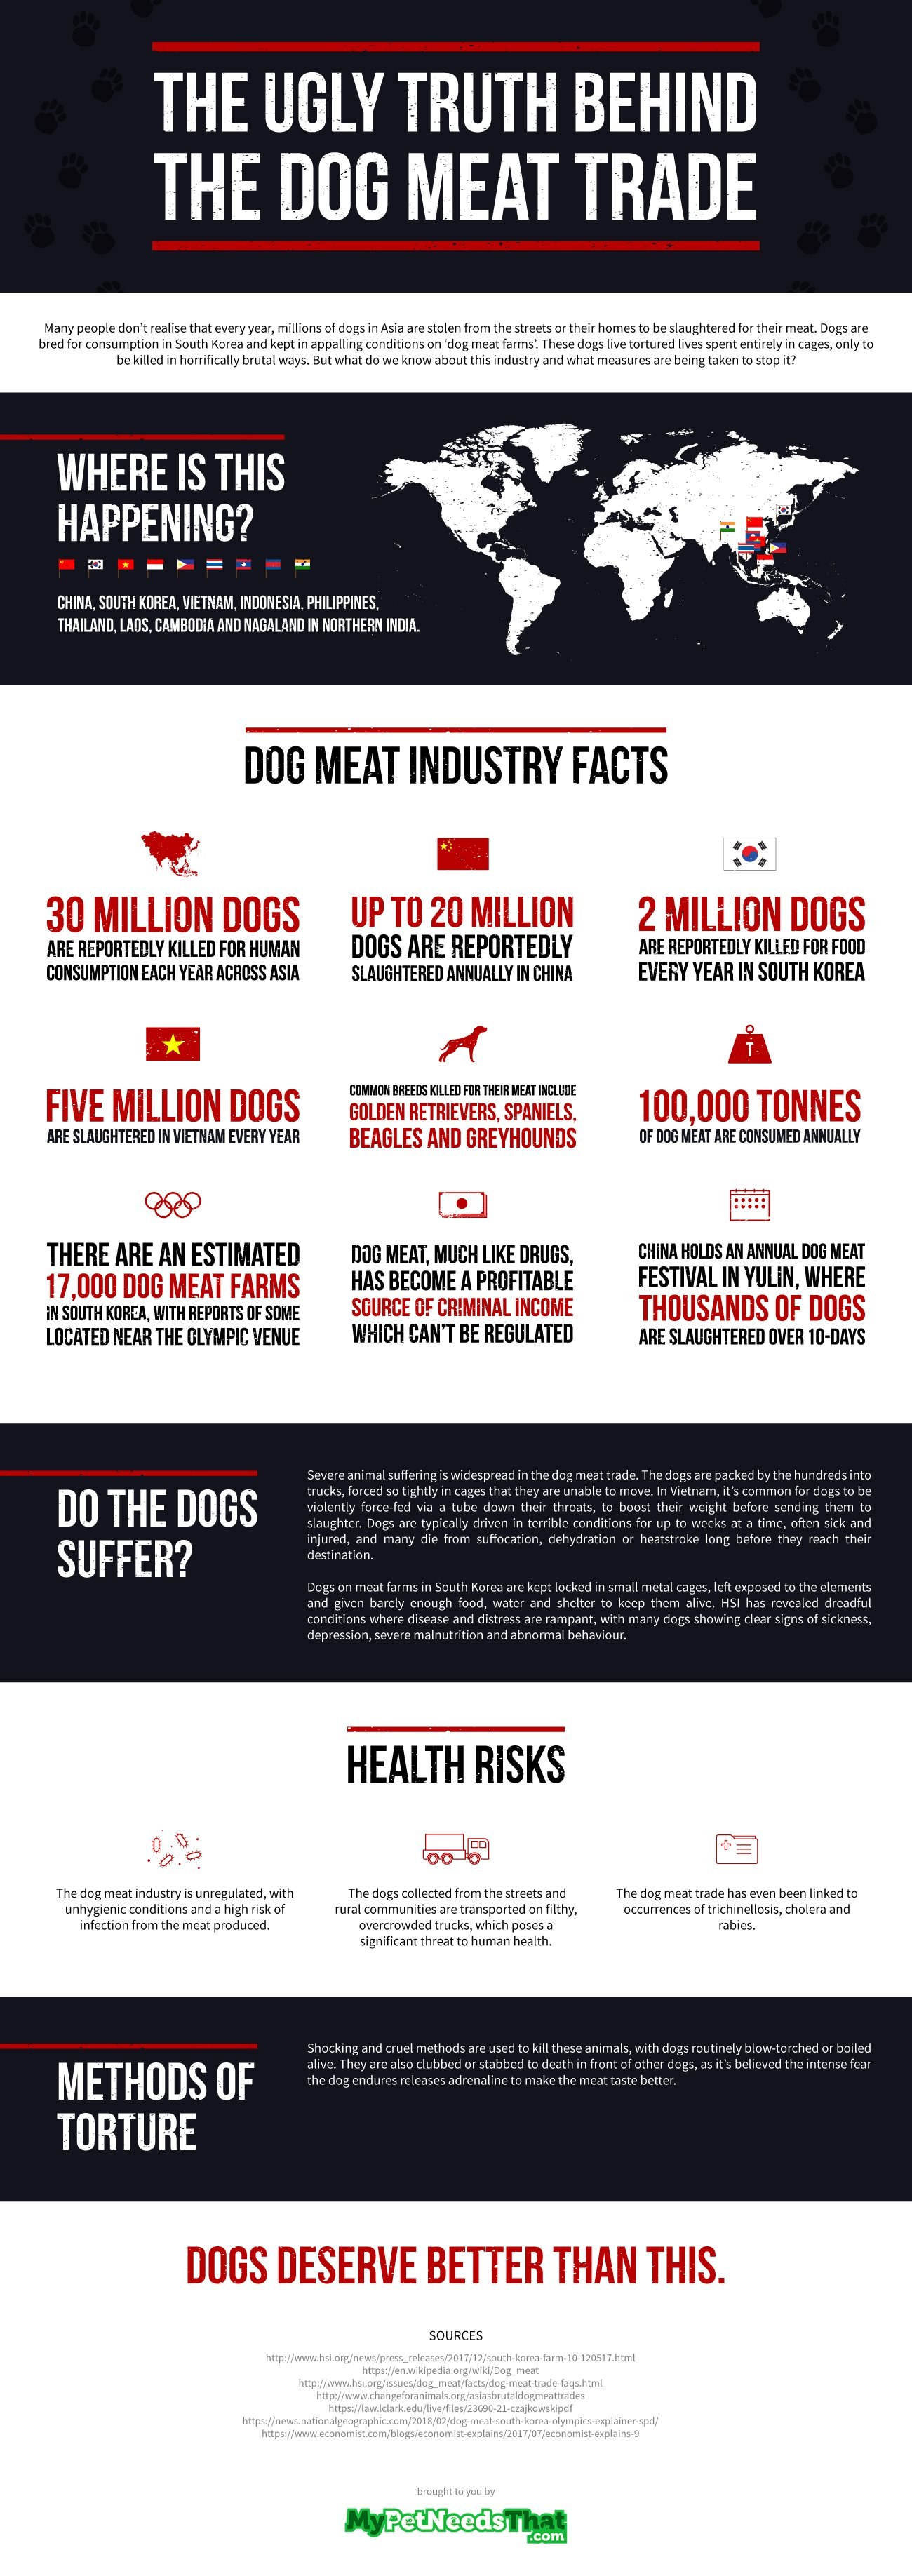 The Ugly Truth Behind the Dog Meat Trade - Infographic